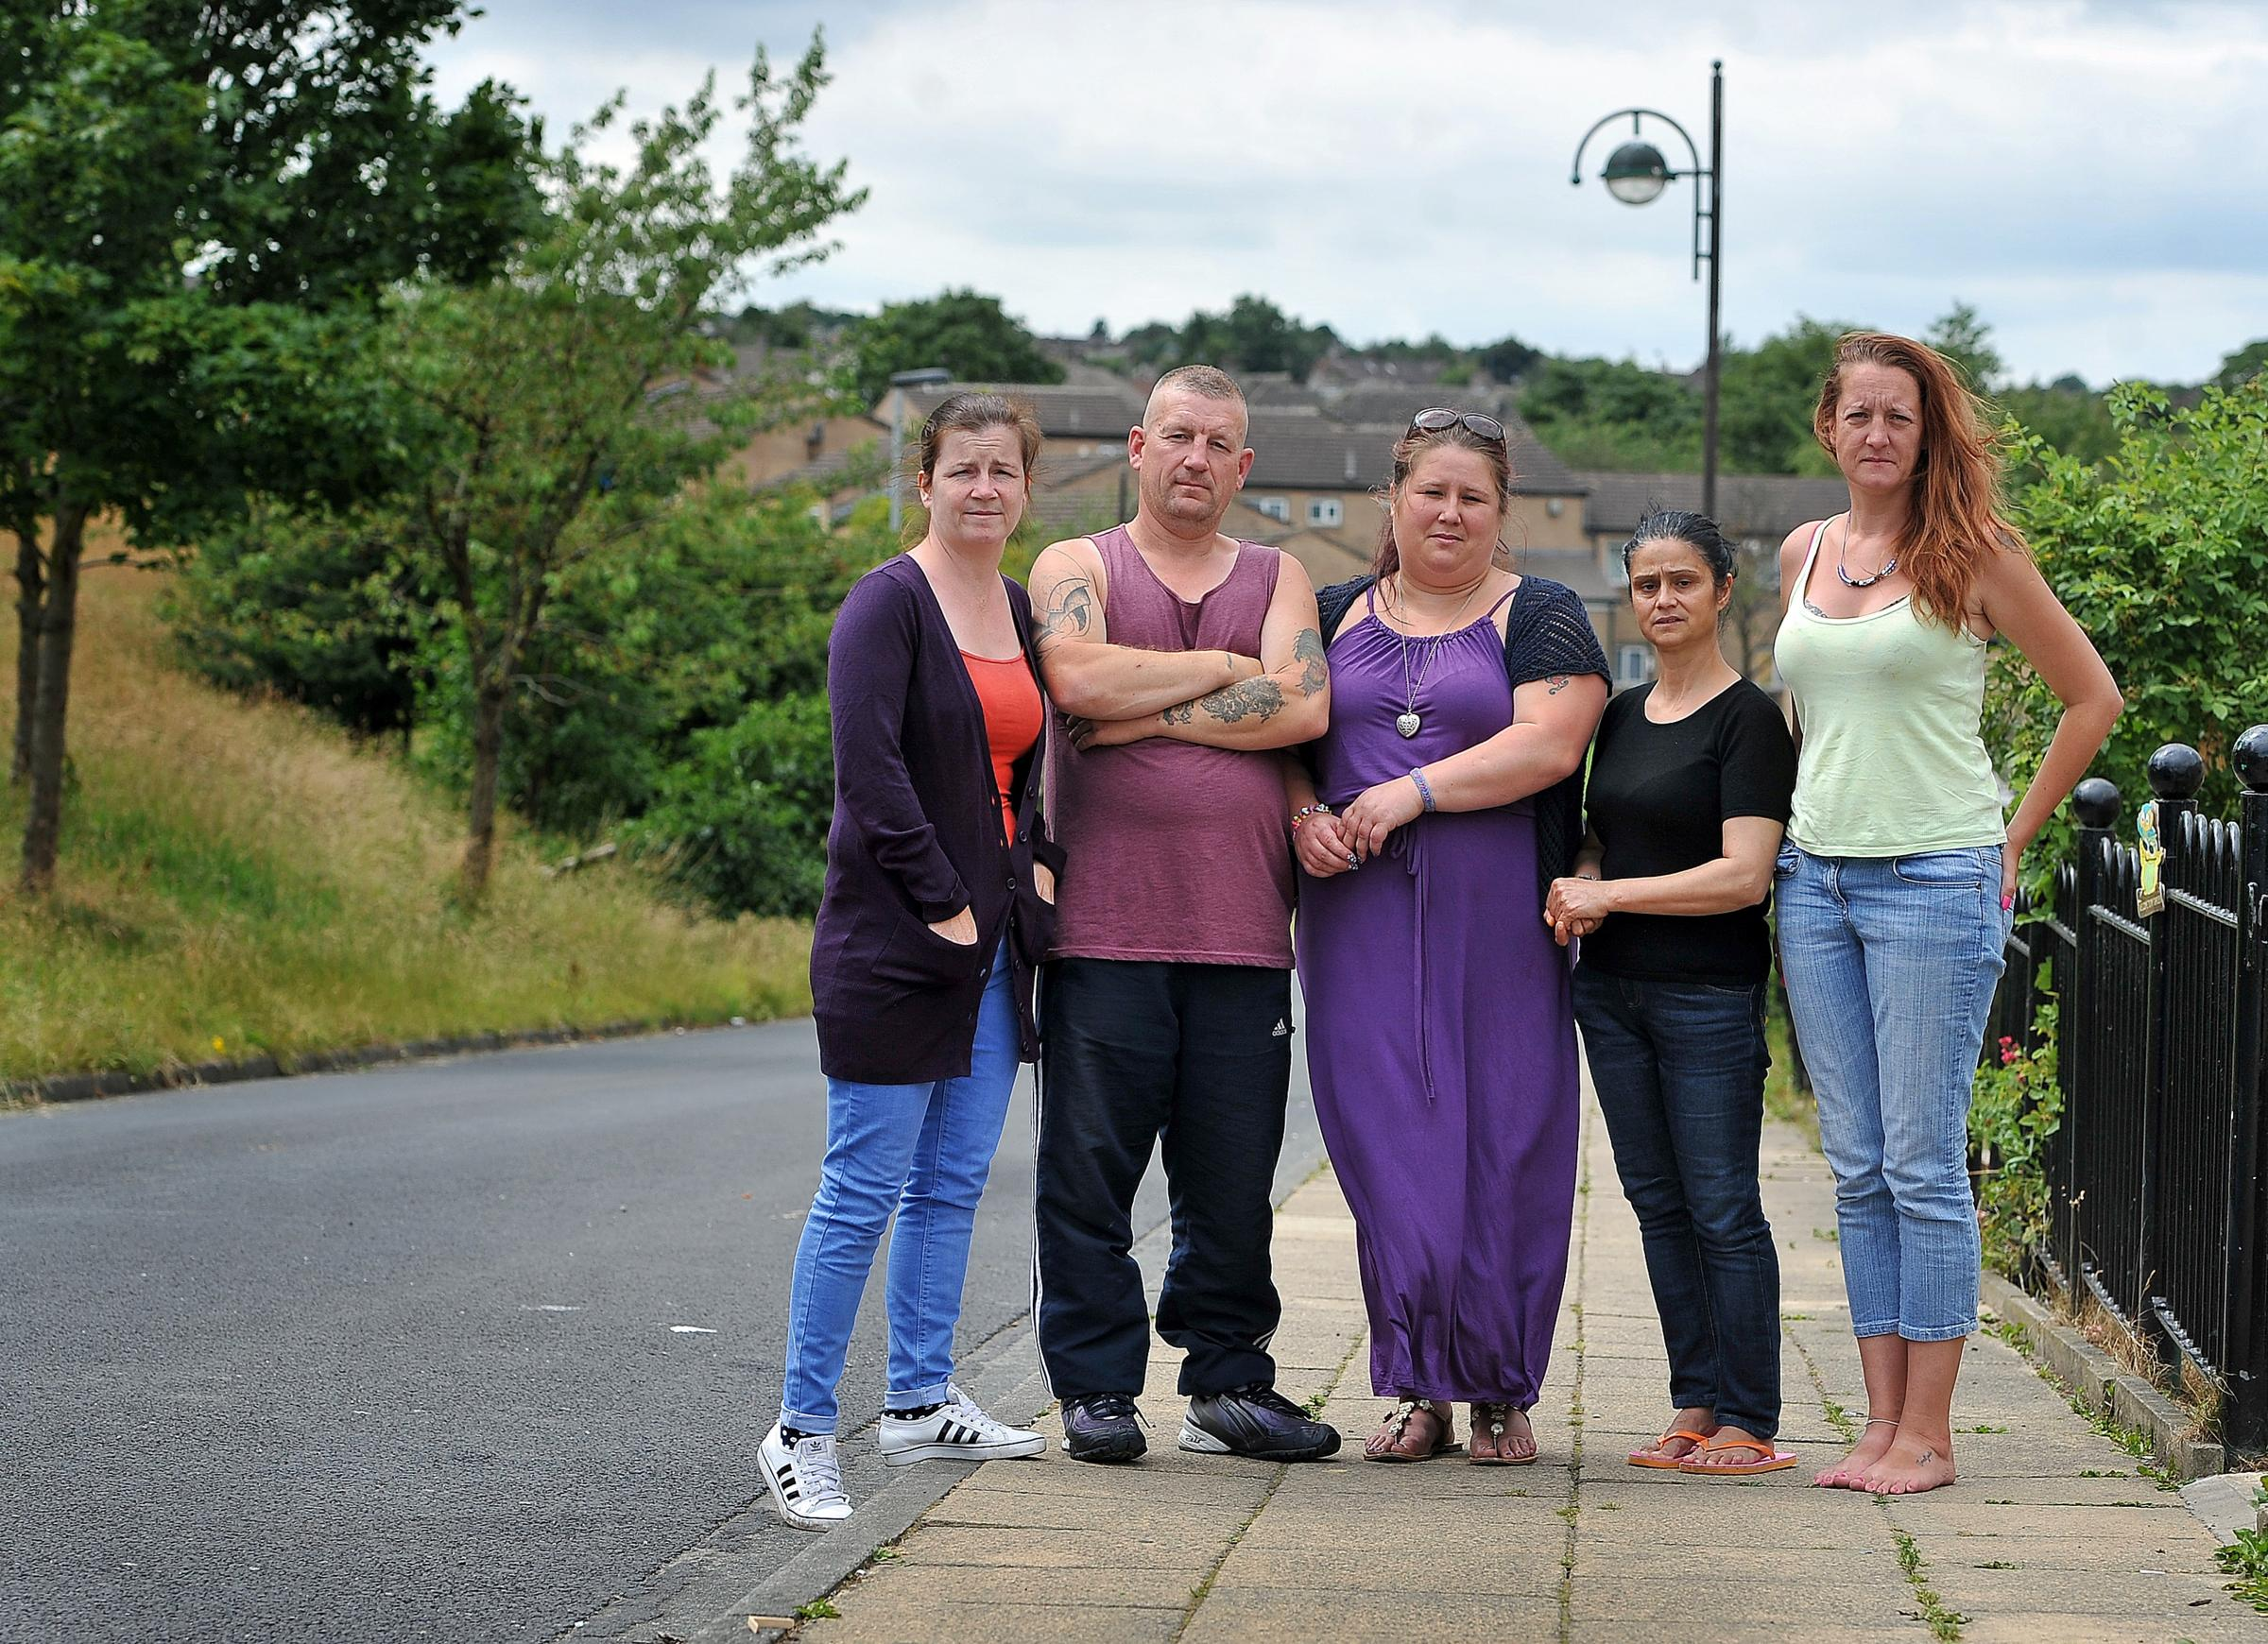 VIDEO: Neighbours call for safety bollards to stop road menace in Holme Wood, Bradford